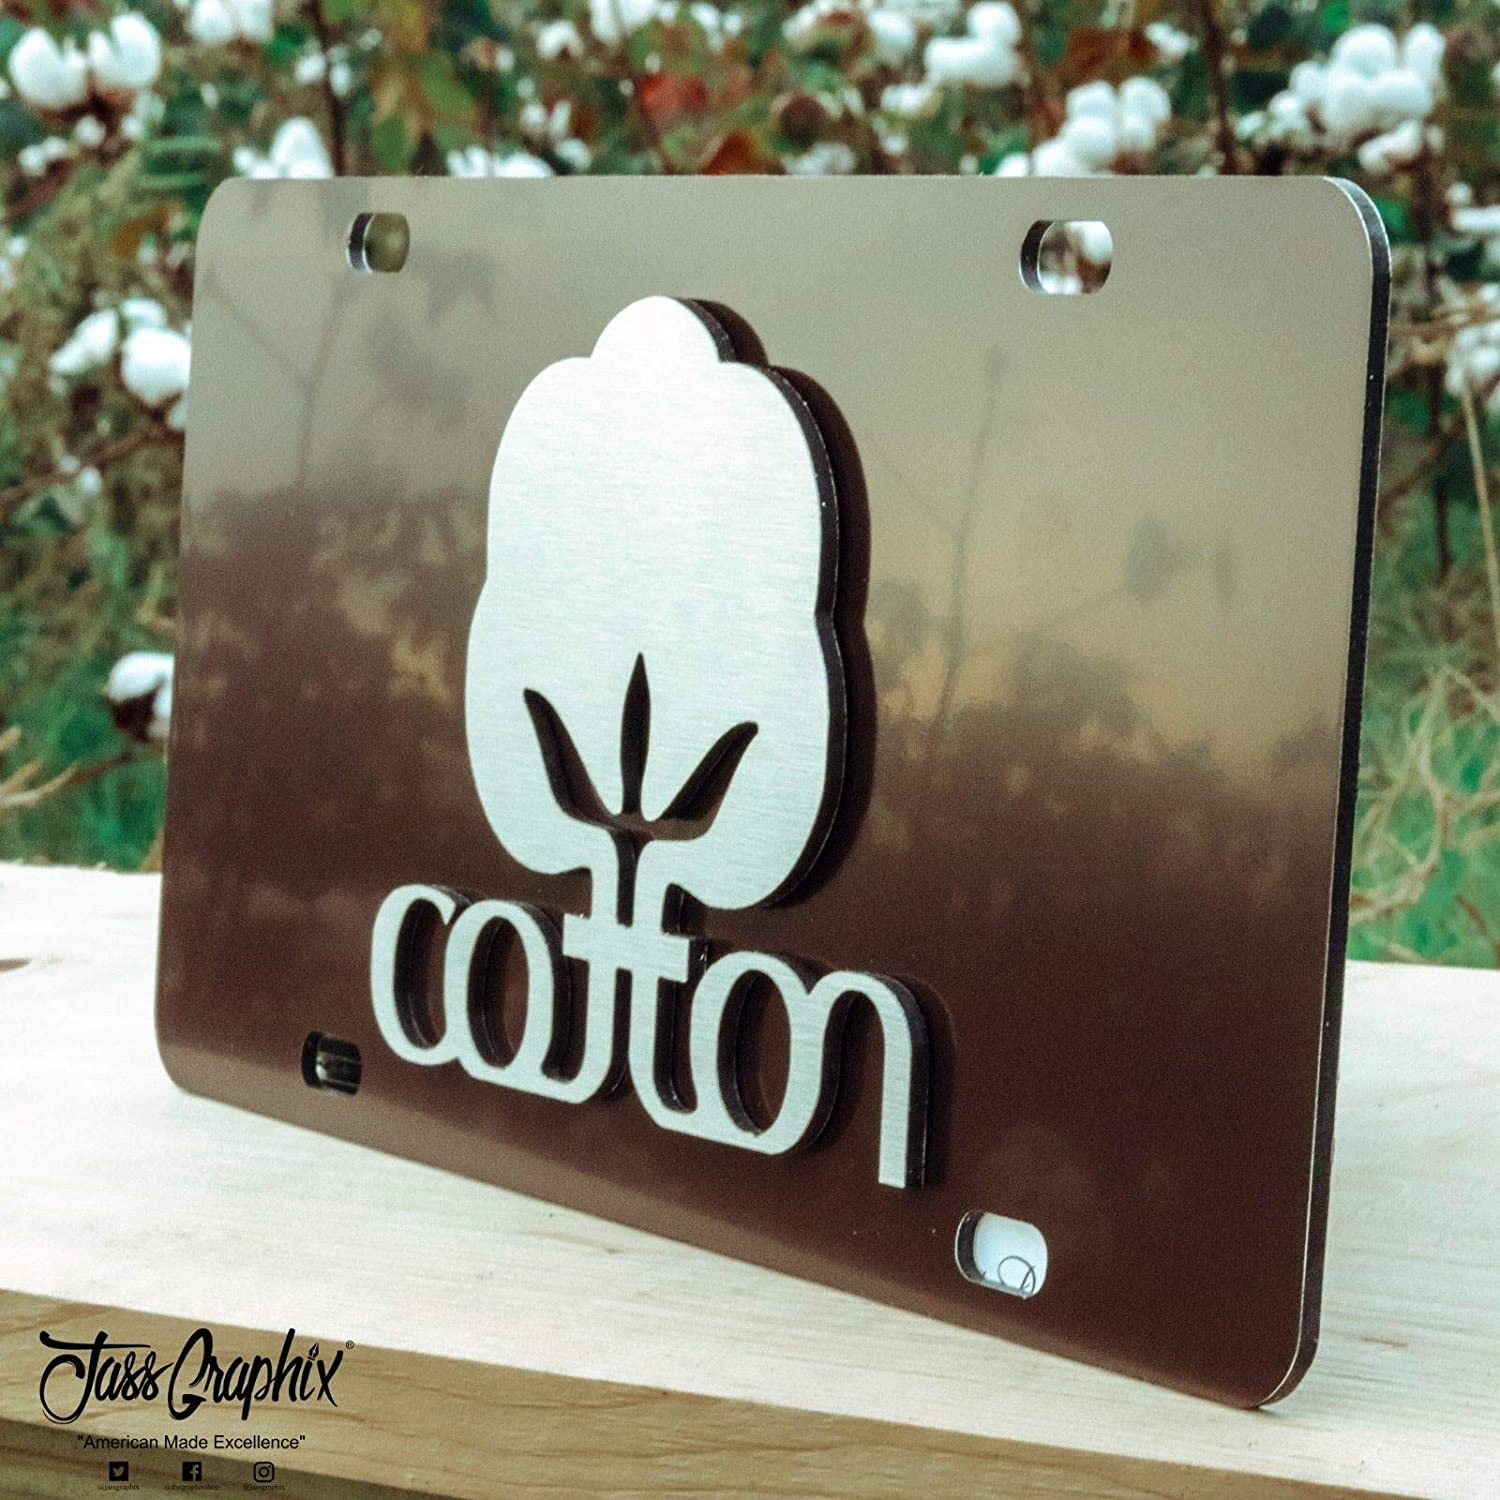 Brown JASS GRAPHIX 2D Cotton Farmer License Plate Brushed Aluminum Heavy Duty Cotton Car Tag Made in USA Officially Licensed